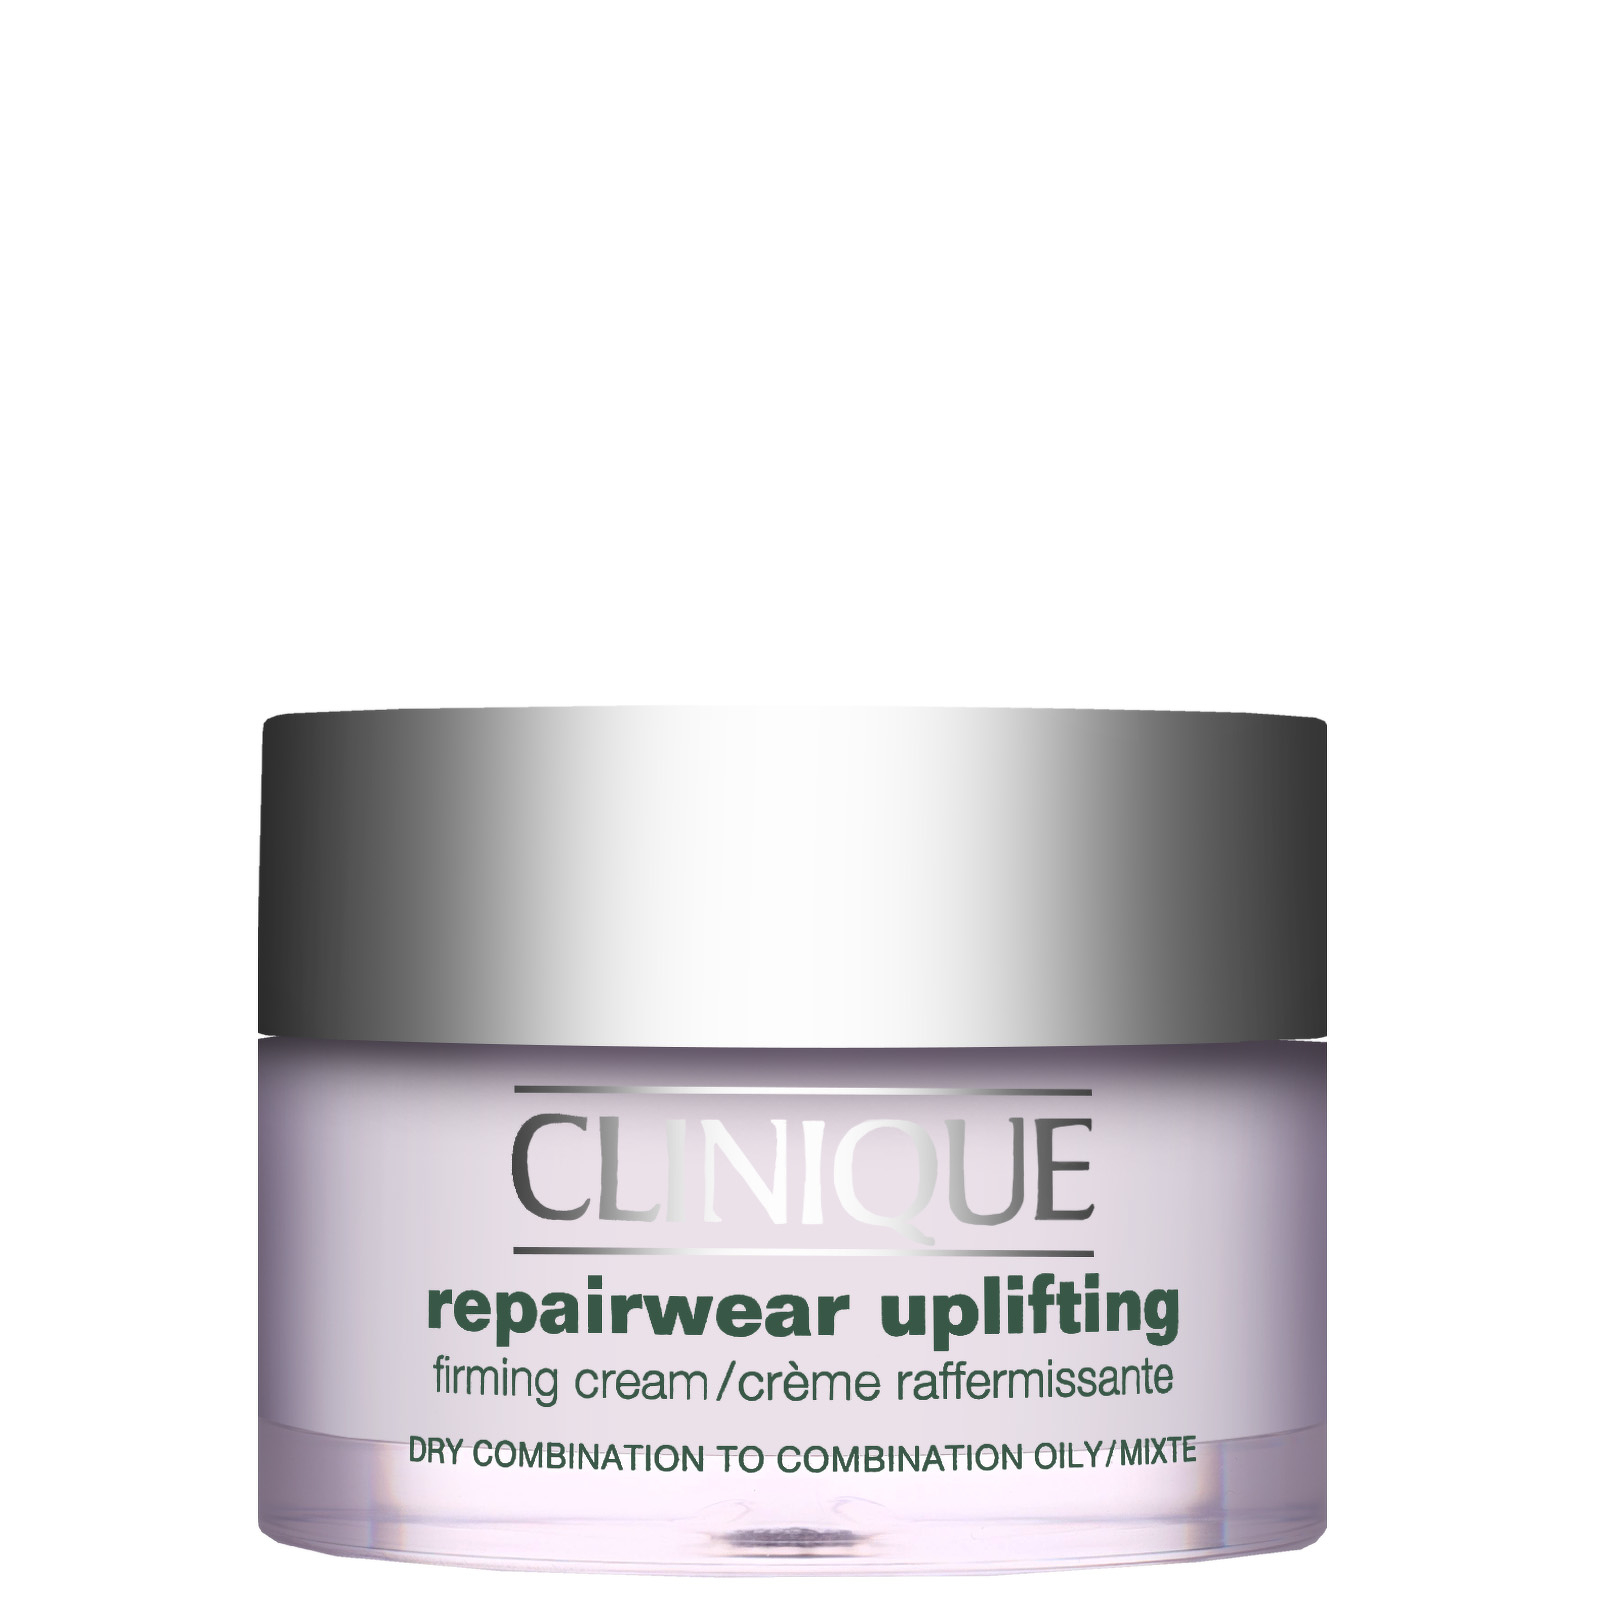 Clinique Moisturisers Repairwear Uplifting Firming Cream for Dry Combination to Combination Oily Skin 50ml / 1.7 fl.oz.